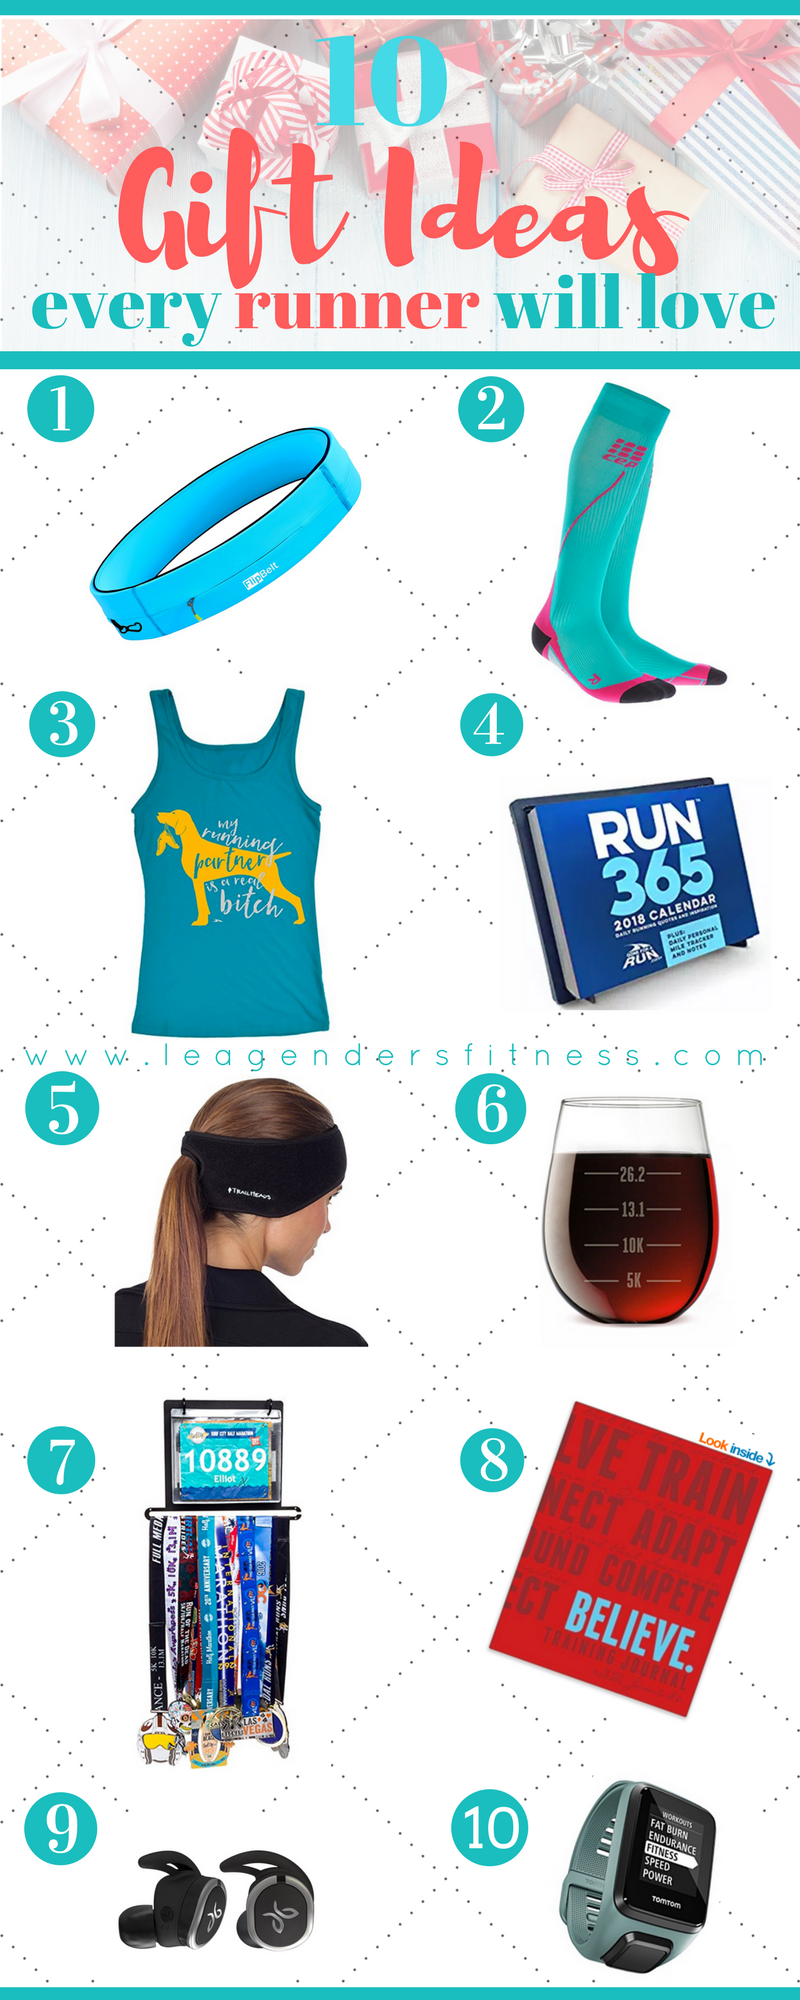 10 Gift Ideas Every Runner Will Love. Save to Pinterest